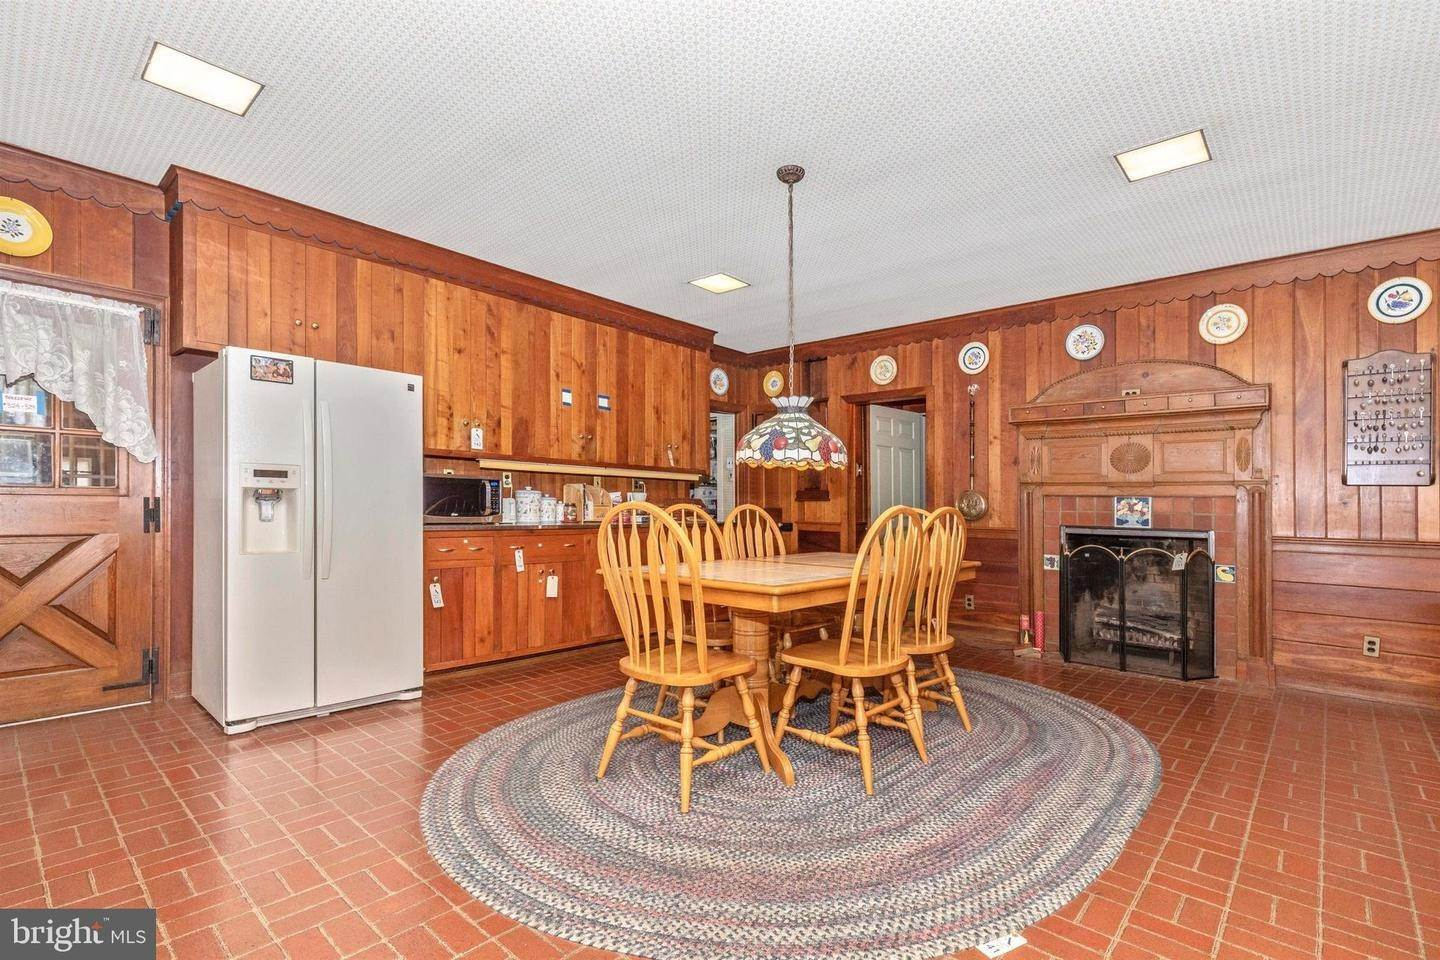 7. Detached House for Sale at 2576 BEAN ROAD Norristown, Pennsylvania 19403 United States